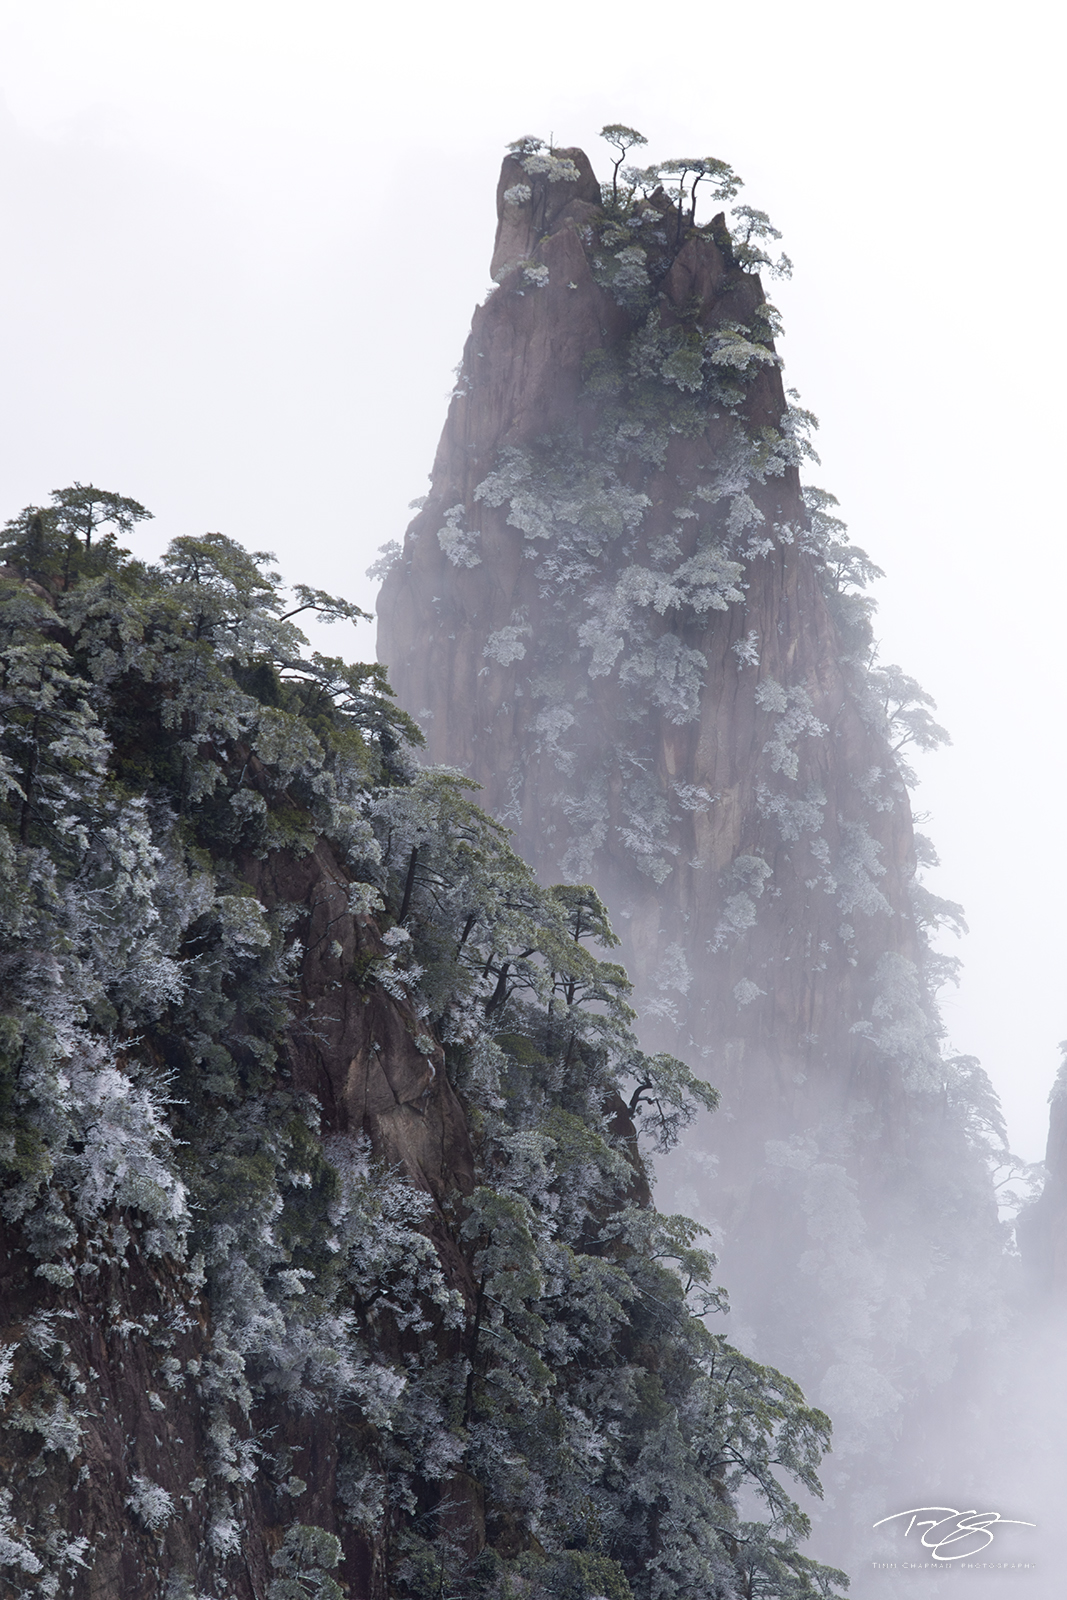 huangshan, china, yellow mountains, floating mountains, clouds, inversion, fog, spires, towers, huangshan pine, pine, tree, hoar frost, frost, hoar, rime, frosty, winter, photo